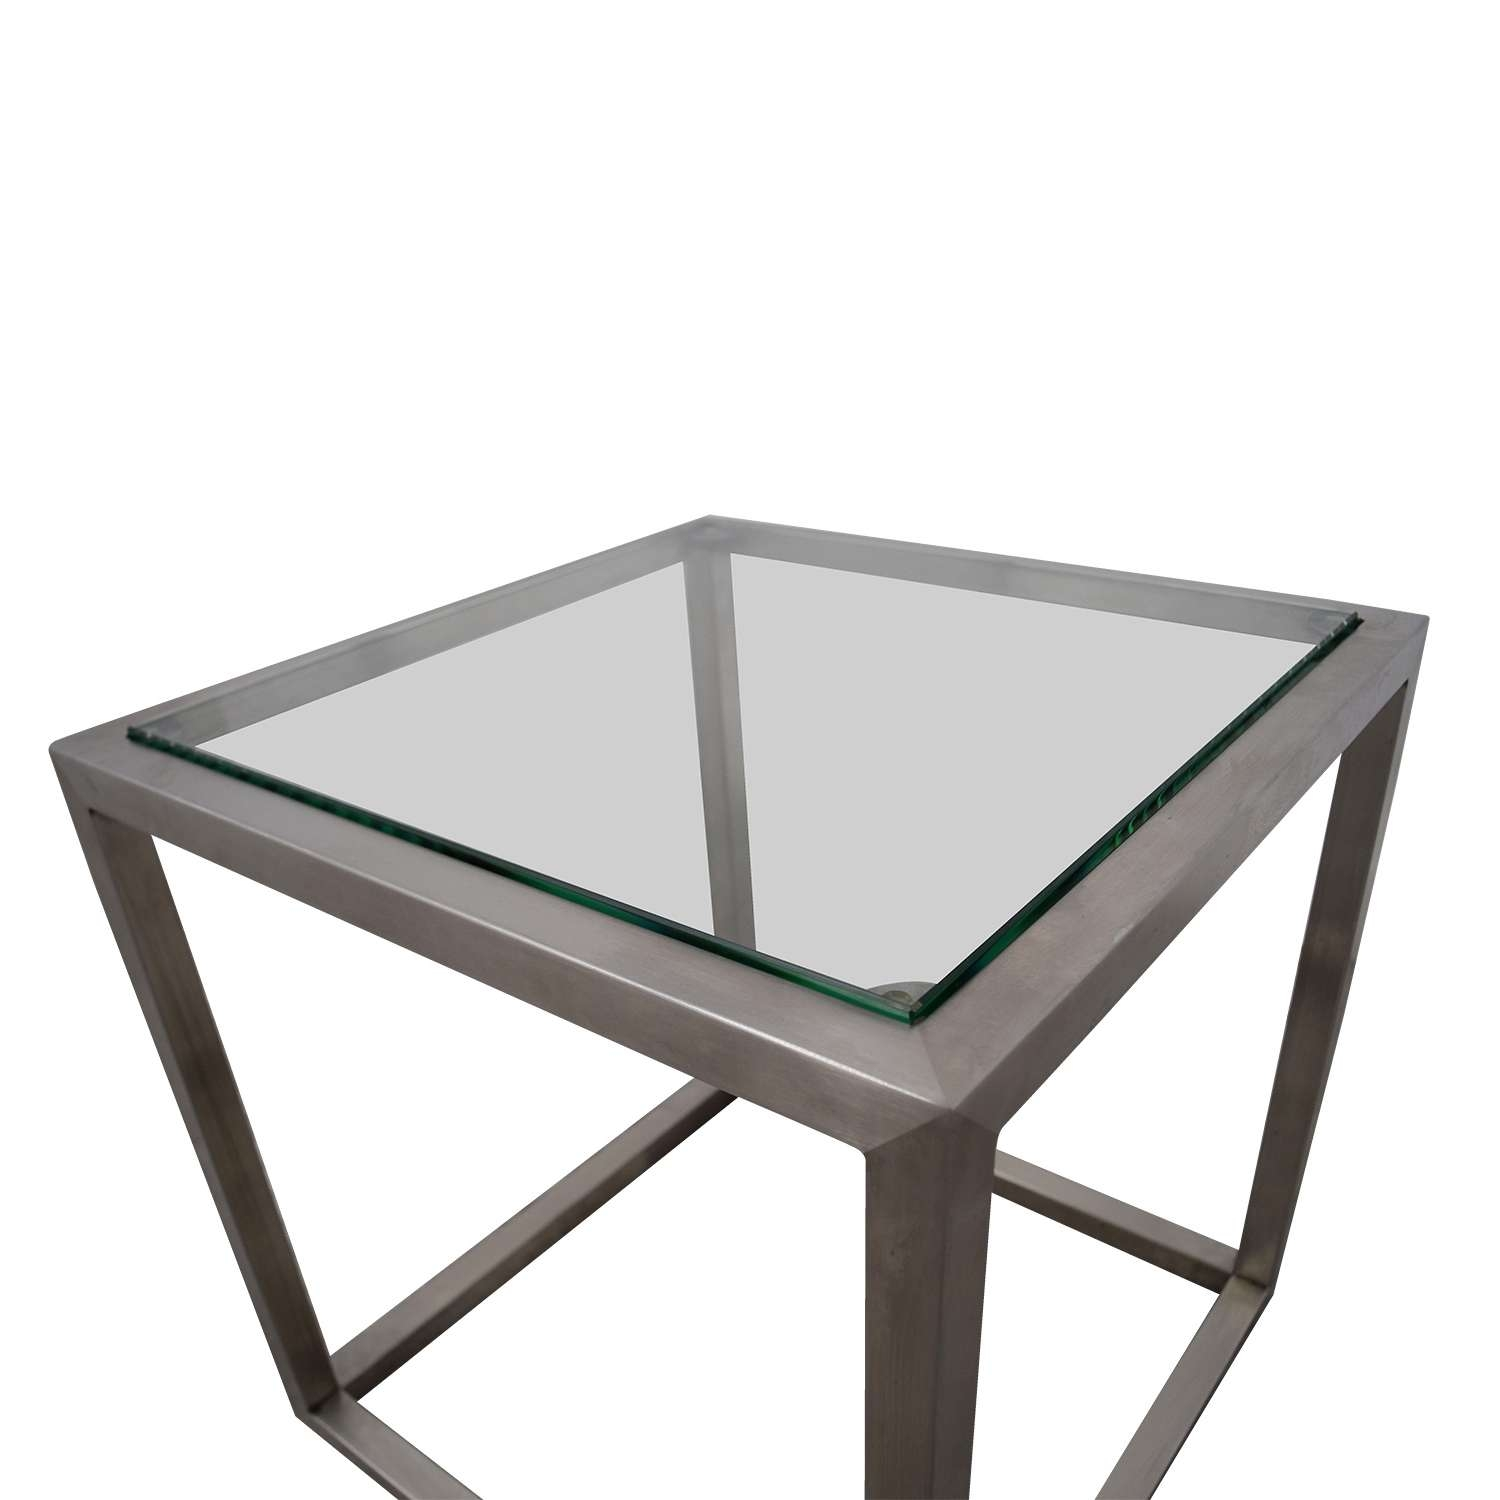 [%Recent White Cube Coffee Tables Pertaining To 70% Off – Ethan Allen Ethan Allen Metal And Glass Cube Coffee|70% Off – Ethan Allen Ethan Allen Metal And Glass Cube Coffee Intended For Favorite White Cube Coffee Tables%] (View 1 of 20)